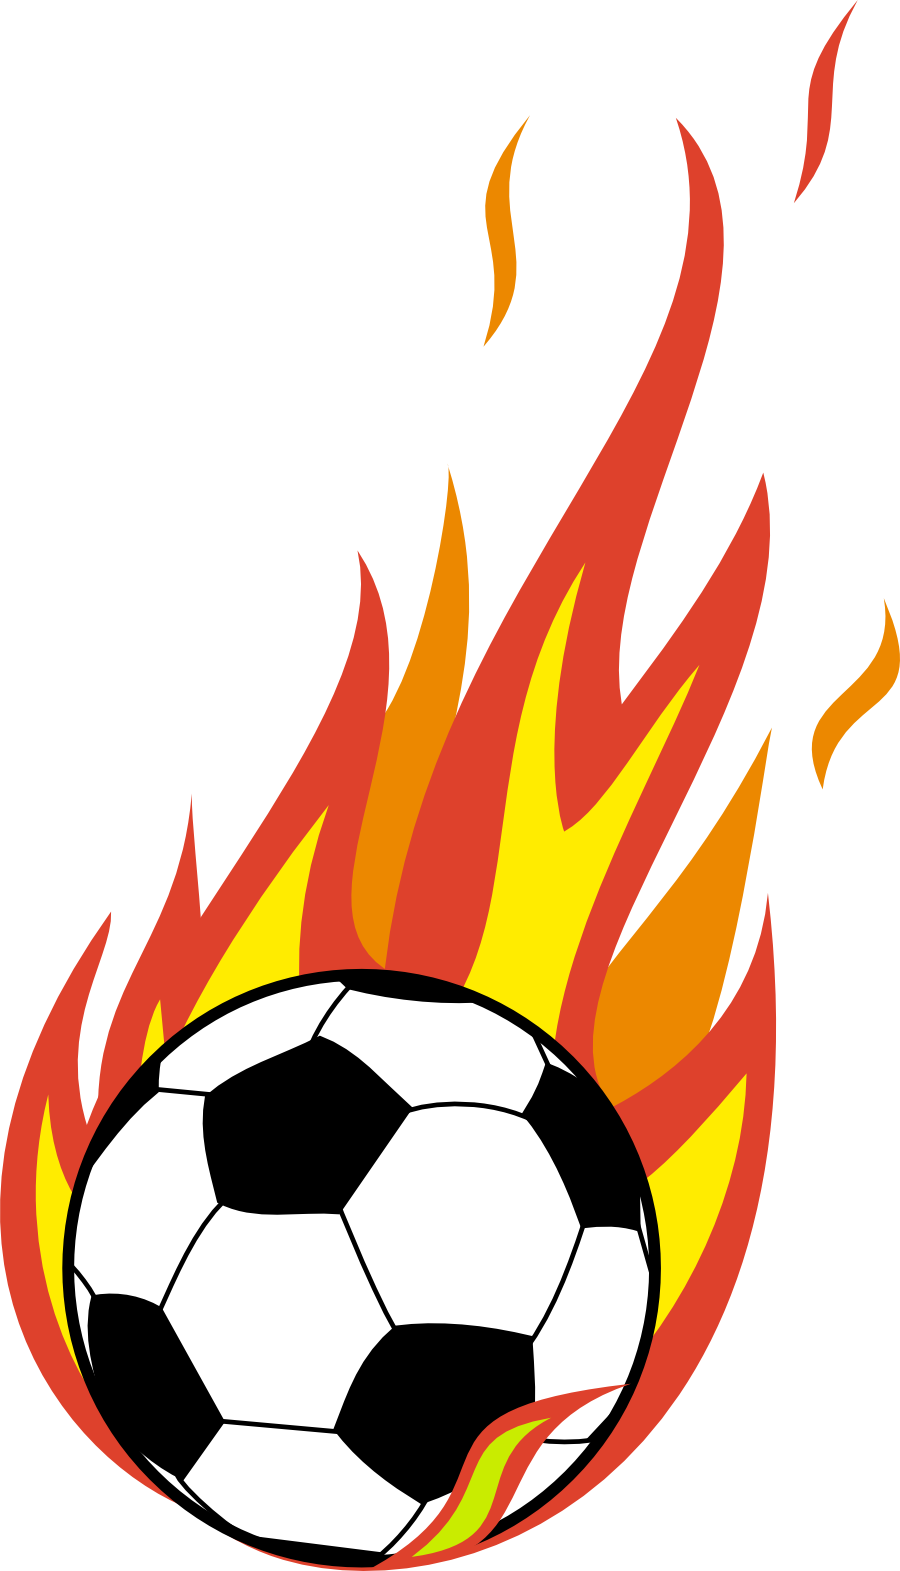 Flaming Soccer Ball Clipart - Clipart Kid